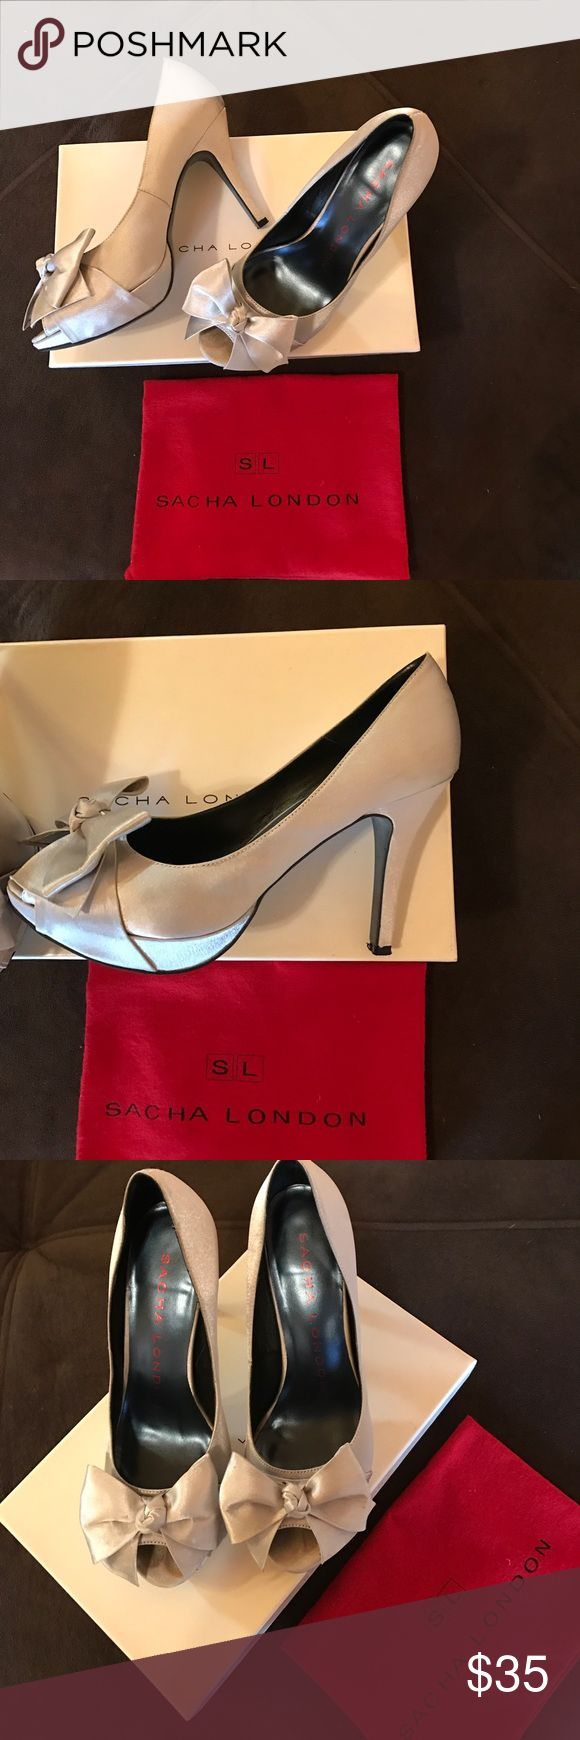 Sacha London Shoes size 7.5  silver with bow Sacha London heels size 7.5 silver with bow front. Satin material. Worn once for a wedding, scuffs on bottom of heels but overall in great condition. Sacha London Shoes Heels